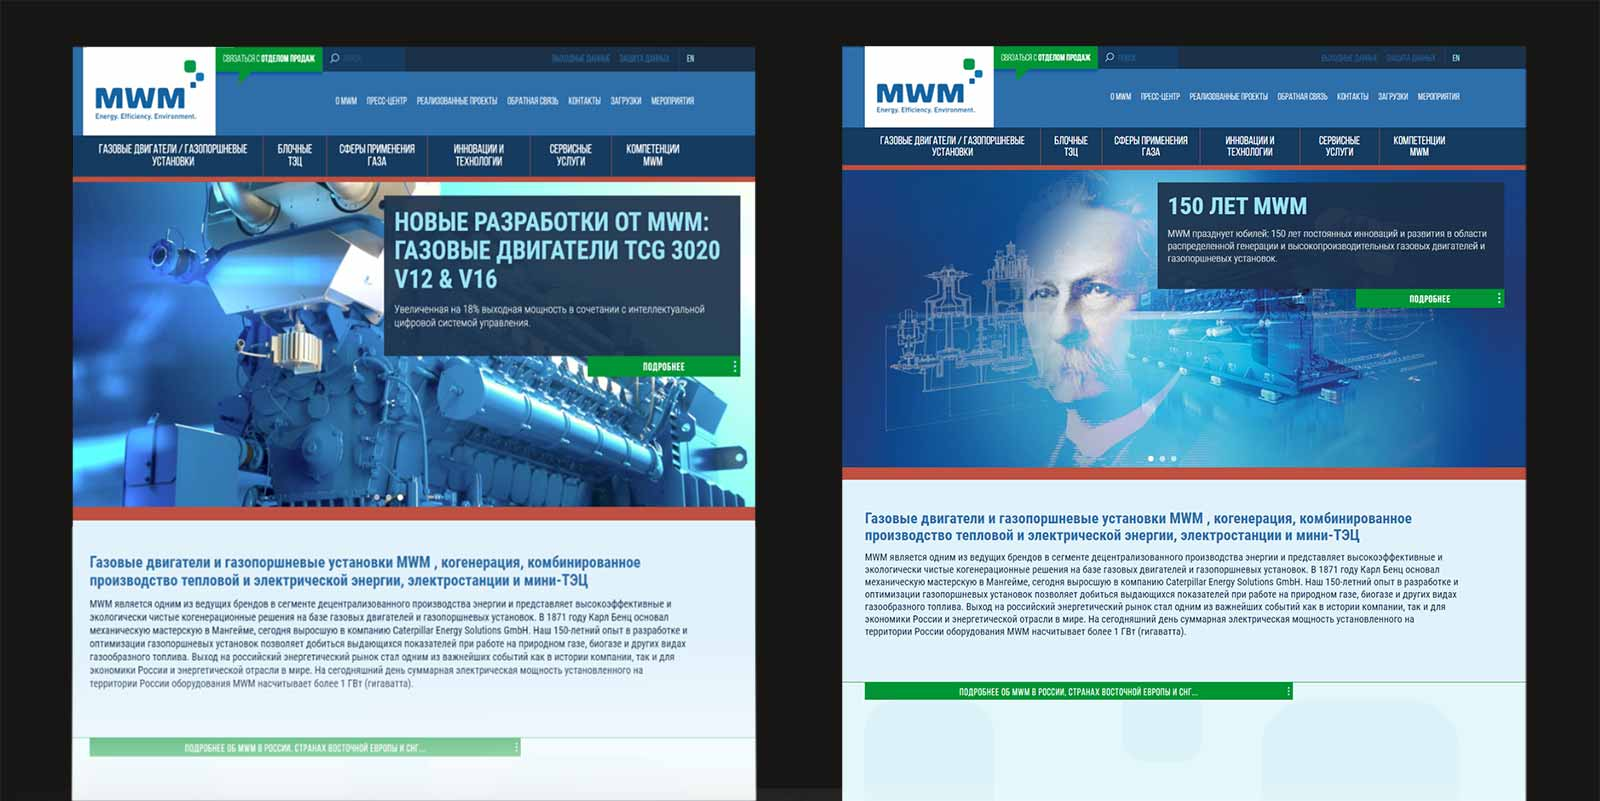 Increased Focus on Market-Relevant MWM References and Services: Successful Relaunch of MWM Website in Russian